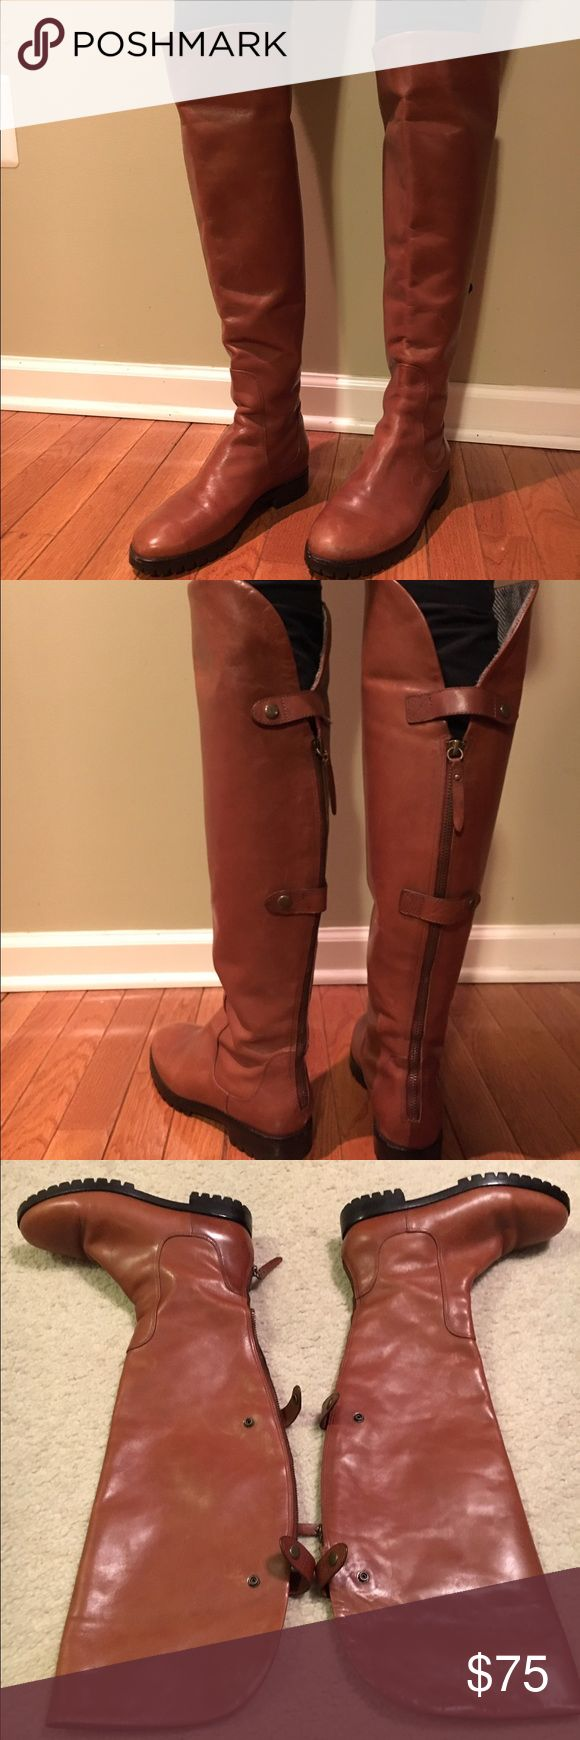 """Cole Haan Air Chatham Over-The-Knee Boot Smooth burnished calfskin upper with antique brass D-ring ornament and strap detail. Fully leather lined and padded leather sock lining. Suede buffed outsole with concealed Nike Air® technology for ultimate comfort. 14"""" circumference, 19"""" shaft height.  3 1/2"""" stacked heel. Imported. Scratches in various areas including toe. Nothing that wouldn't happen with normal wear and tear but not in perfect condition (hence the steal of a price!) Cole Haan…"""